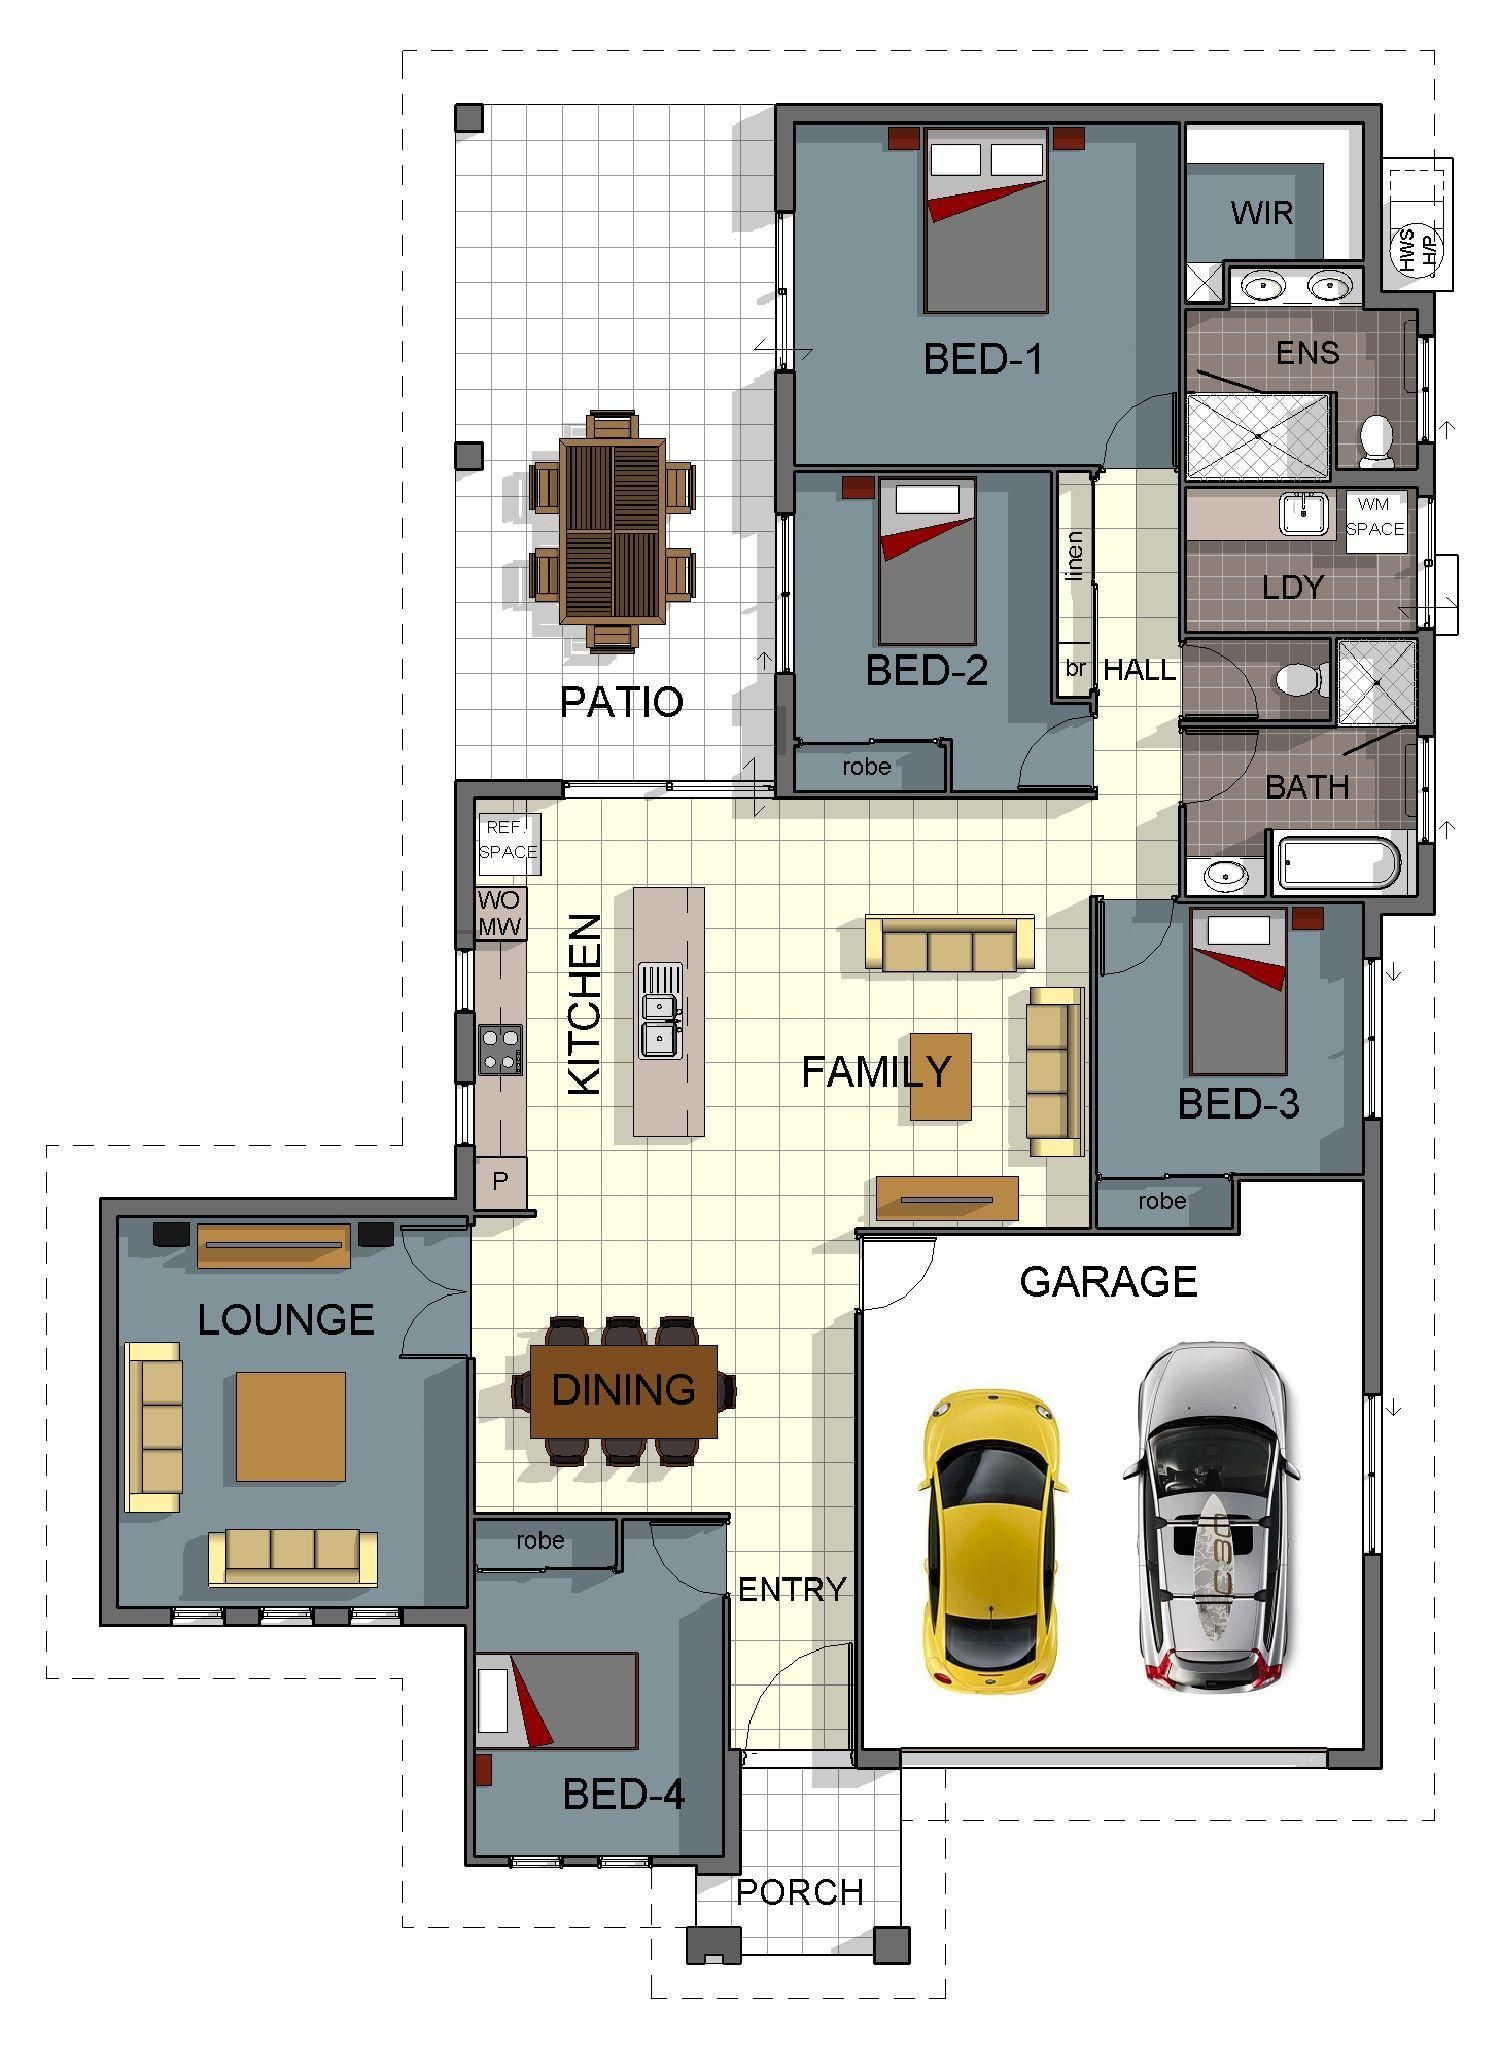 Single storey 4 bedroom house #floorplan with additional rumpus room on laundry room house plans, bed building plans, game room house plans, bed room flooring, big room house plans, guest room house plans, bed room art, bed room diy, bed room cabinets, media room house plans,